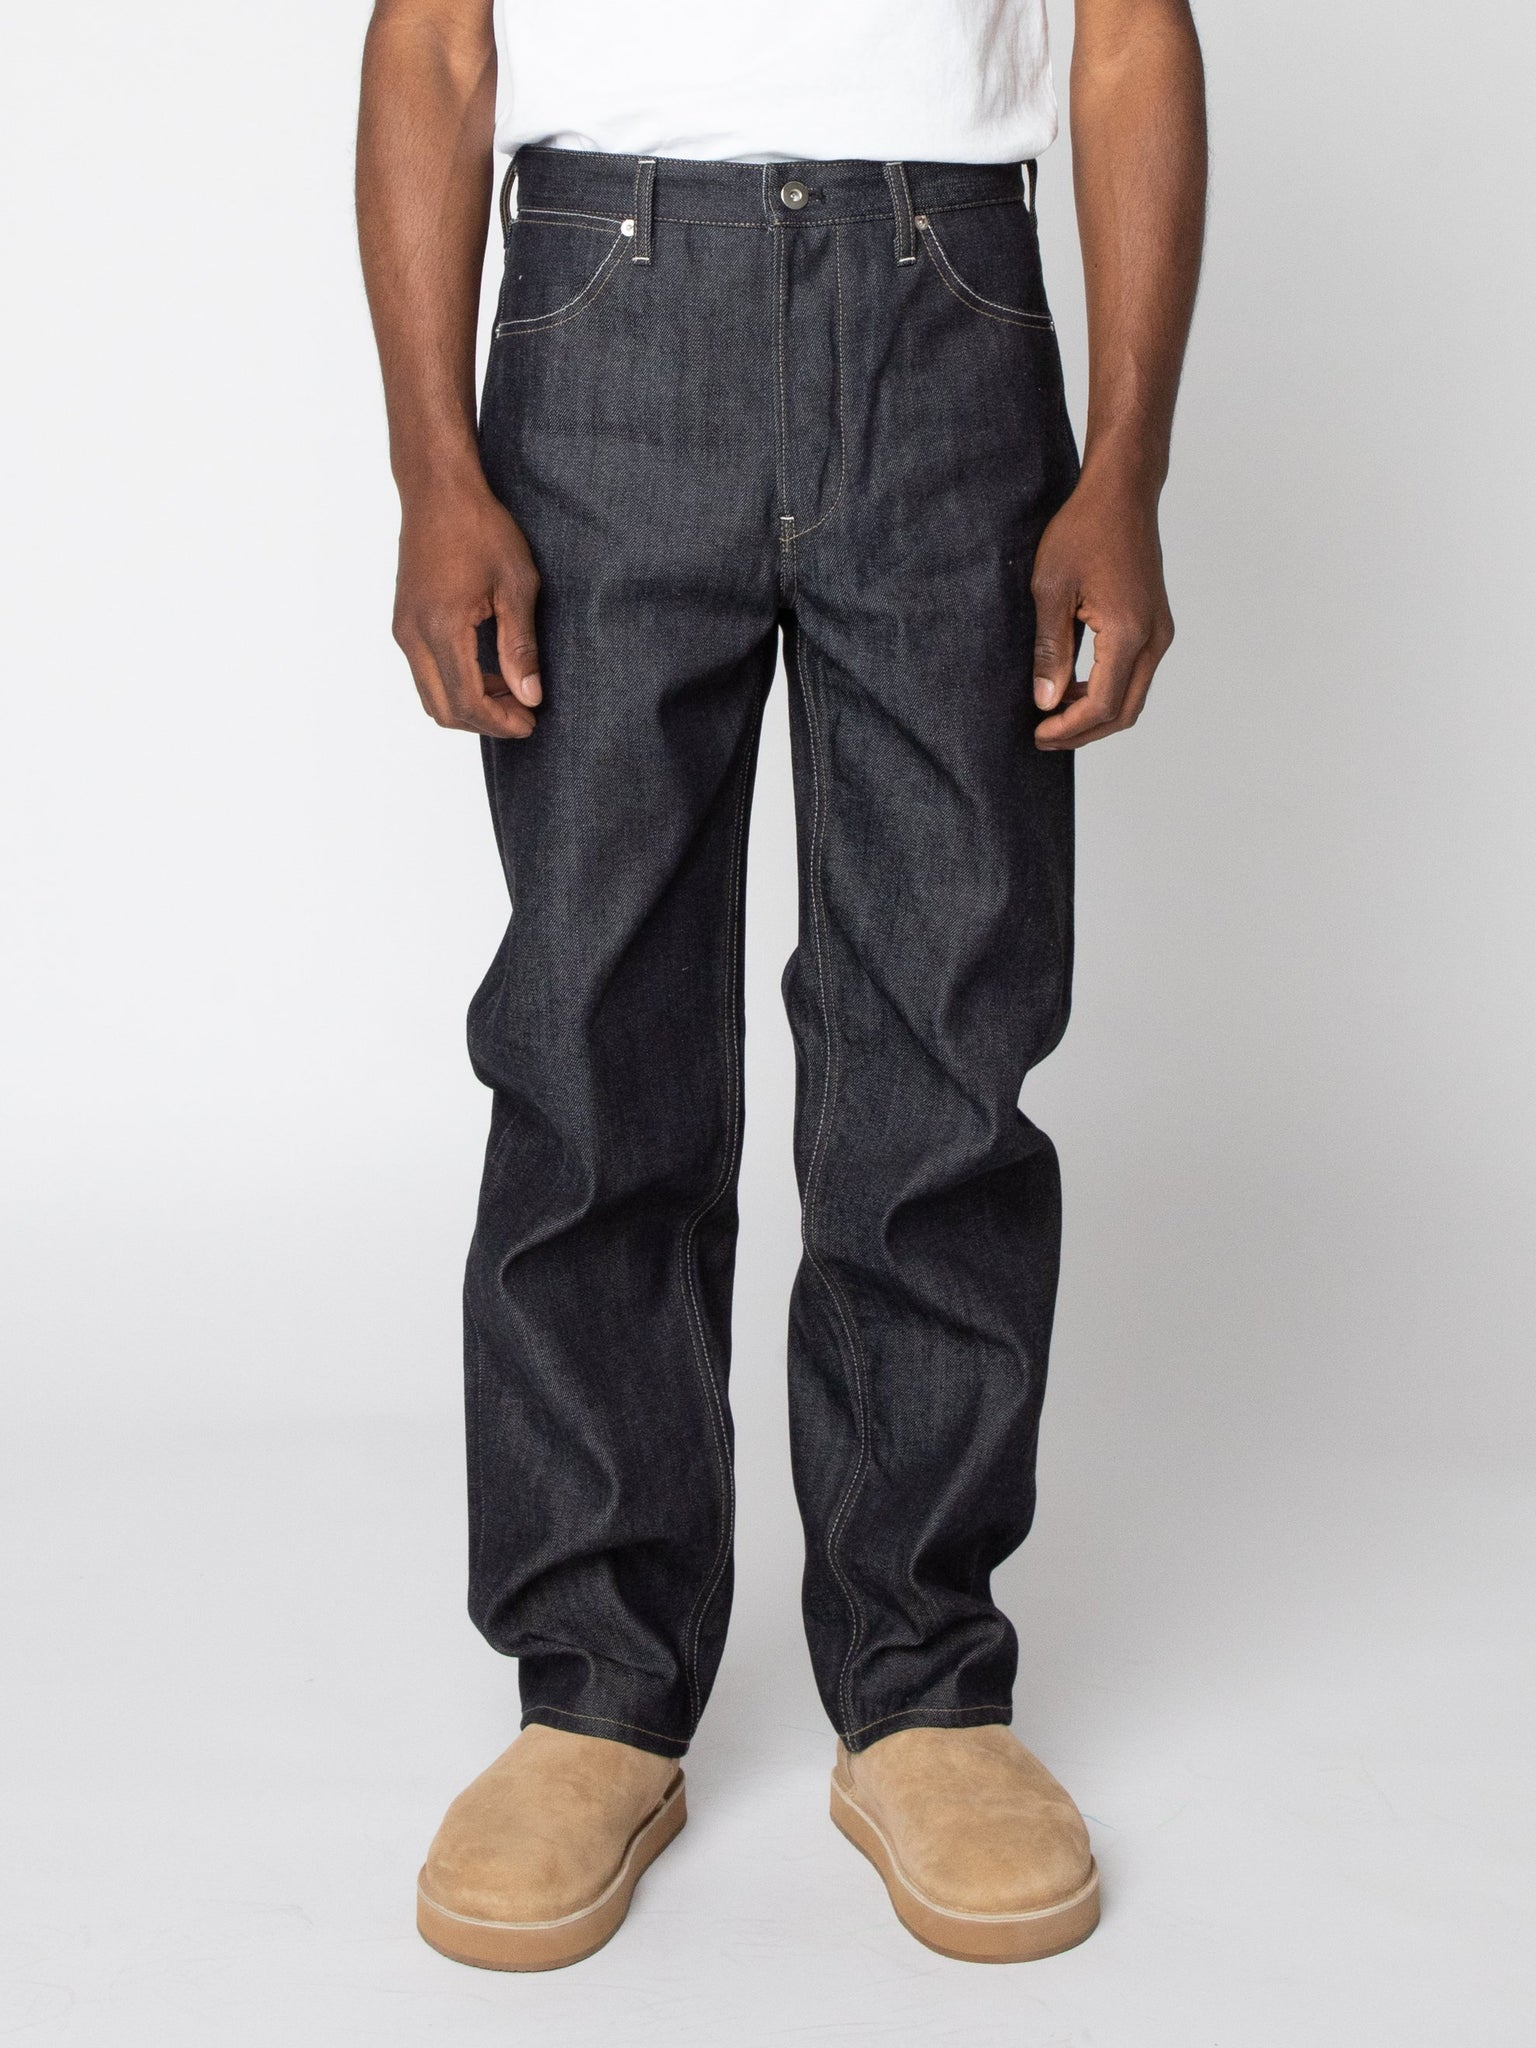 denim-trouser-03